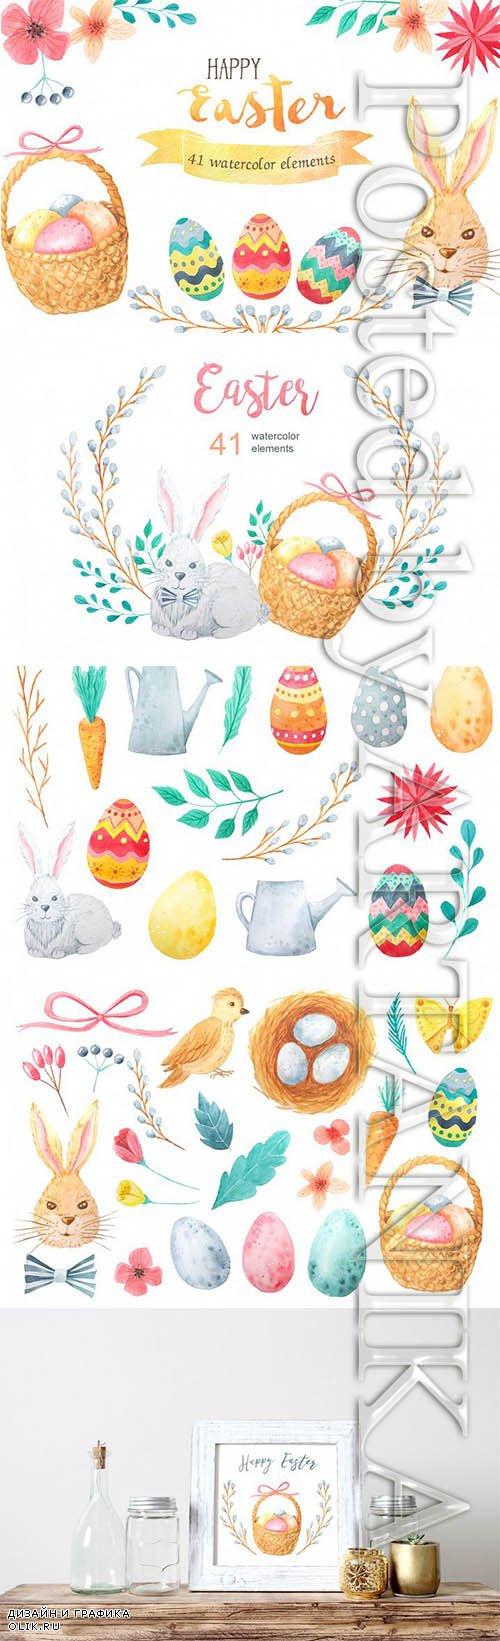 Designbundles - Watercolor Easter Set